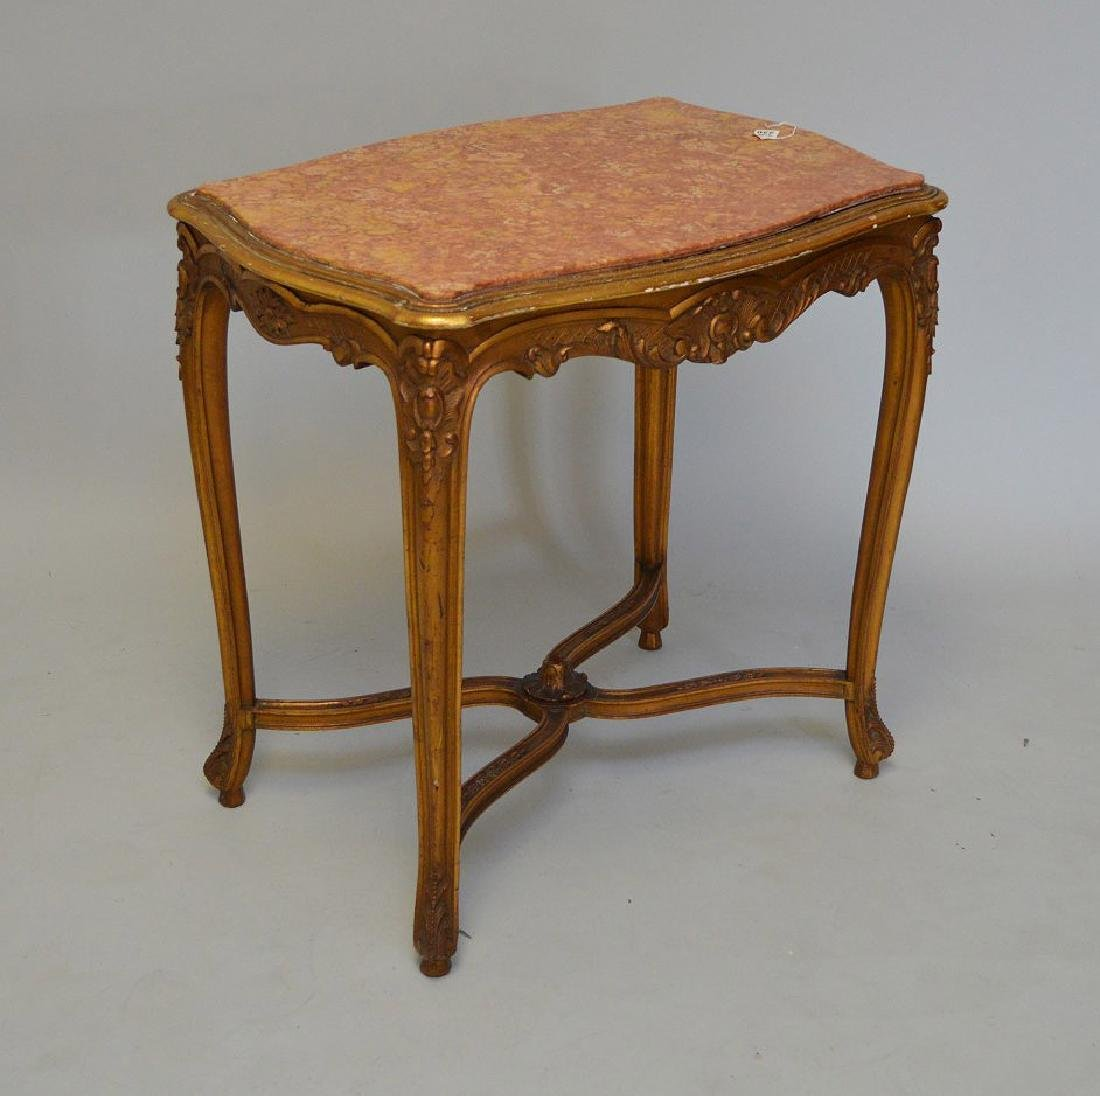 19TH CENTURY CARVED GILT WOOD TABLE WITH RUST COLORED - 6